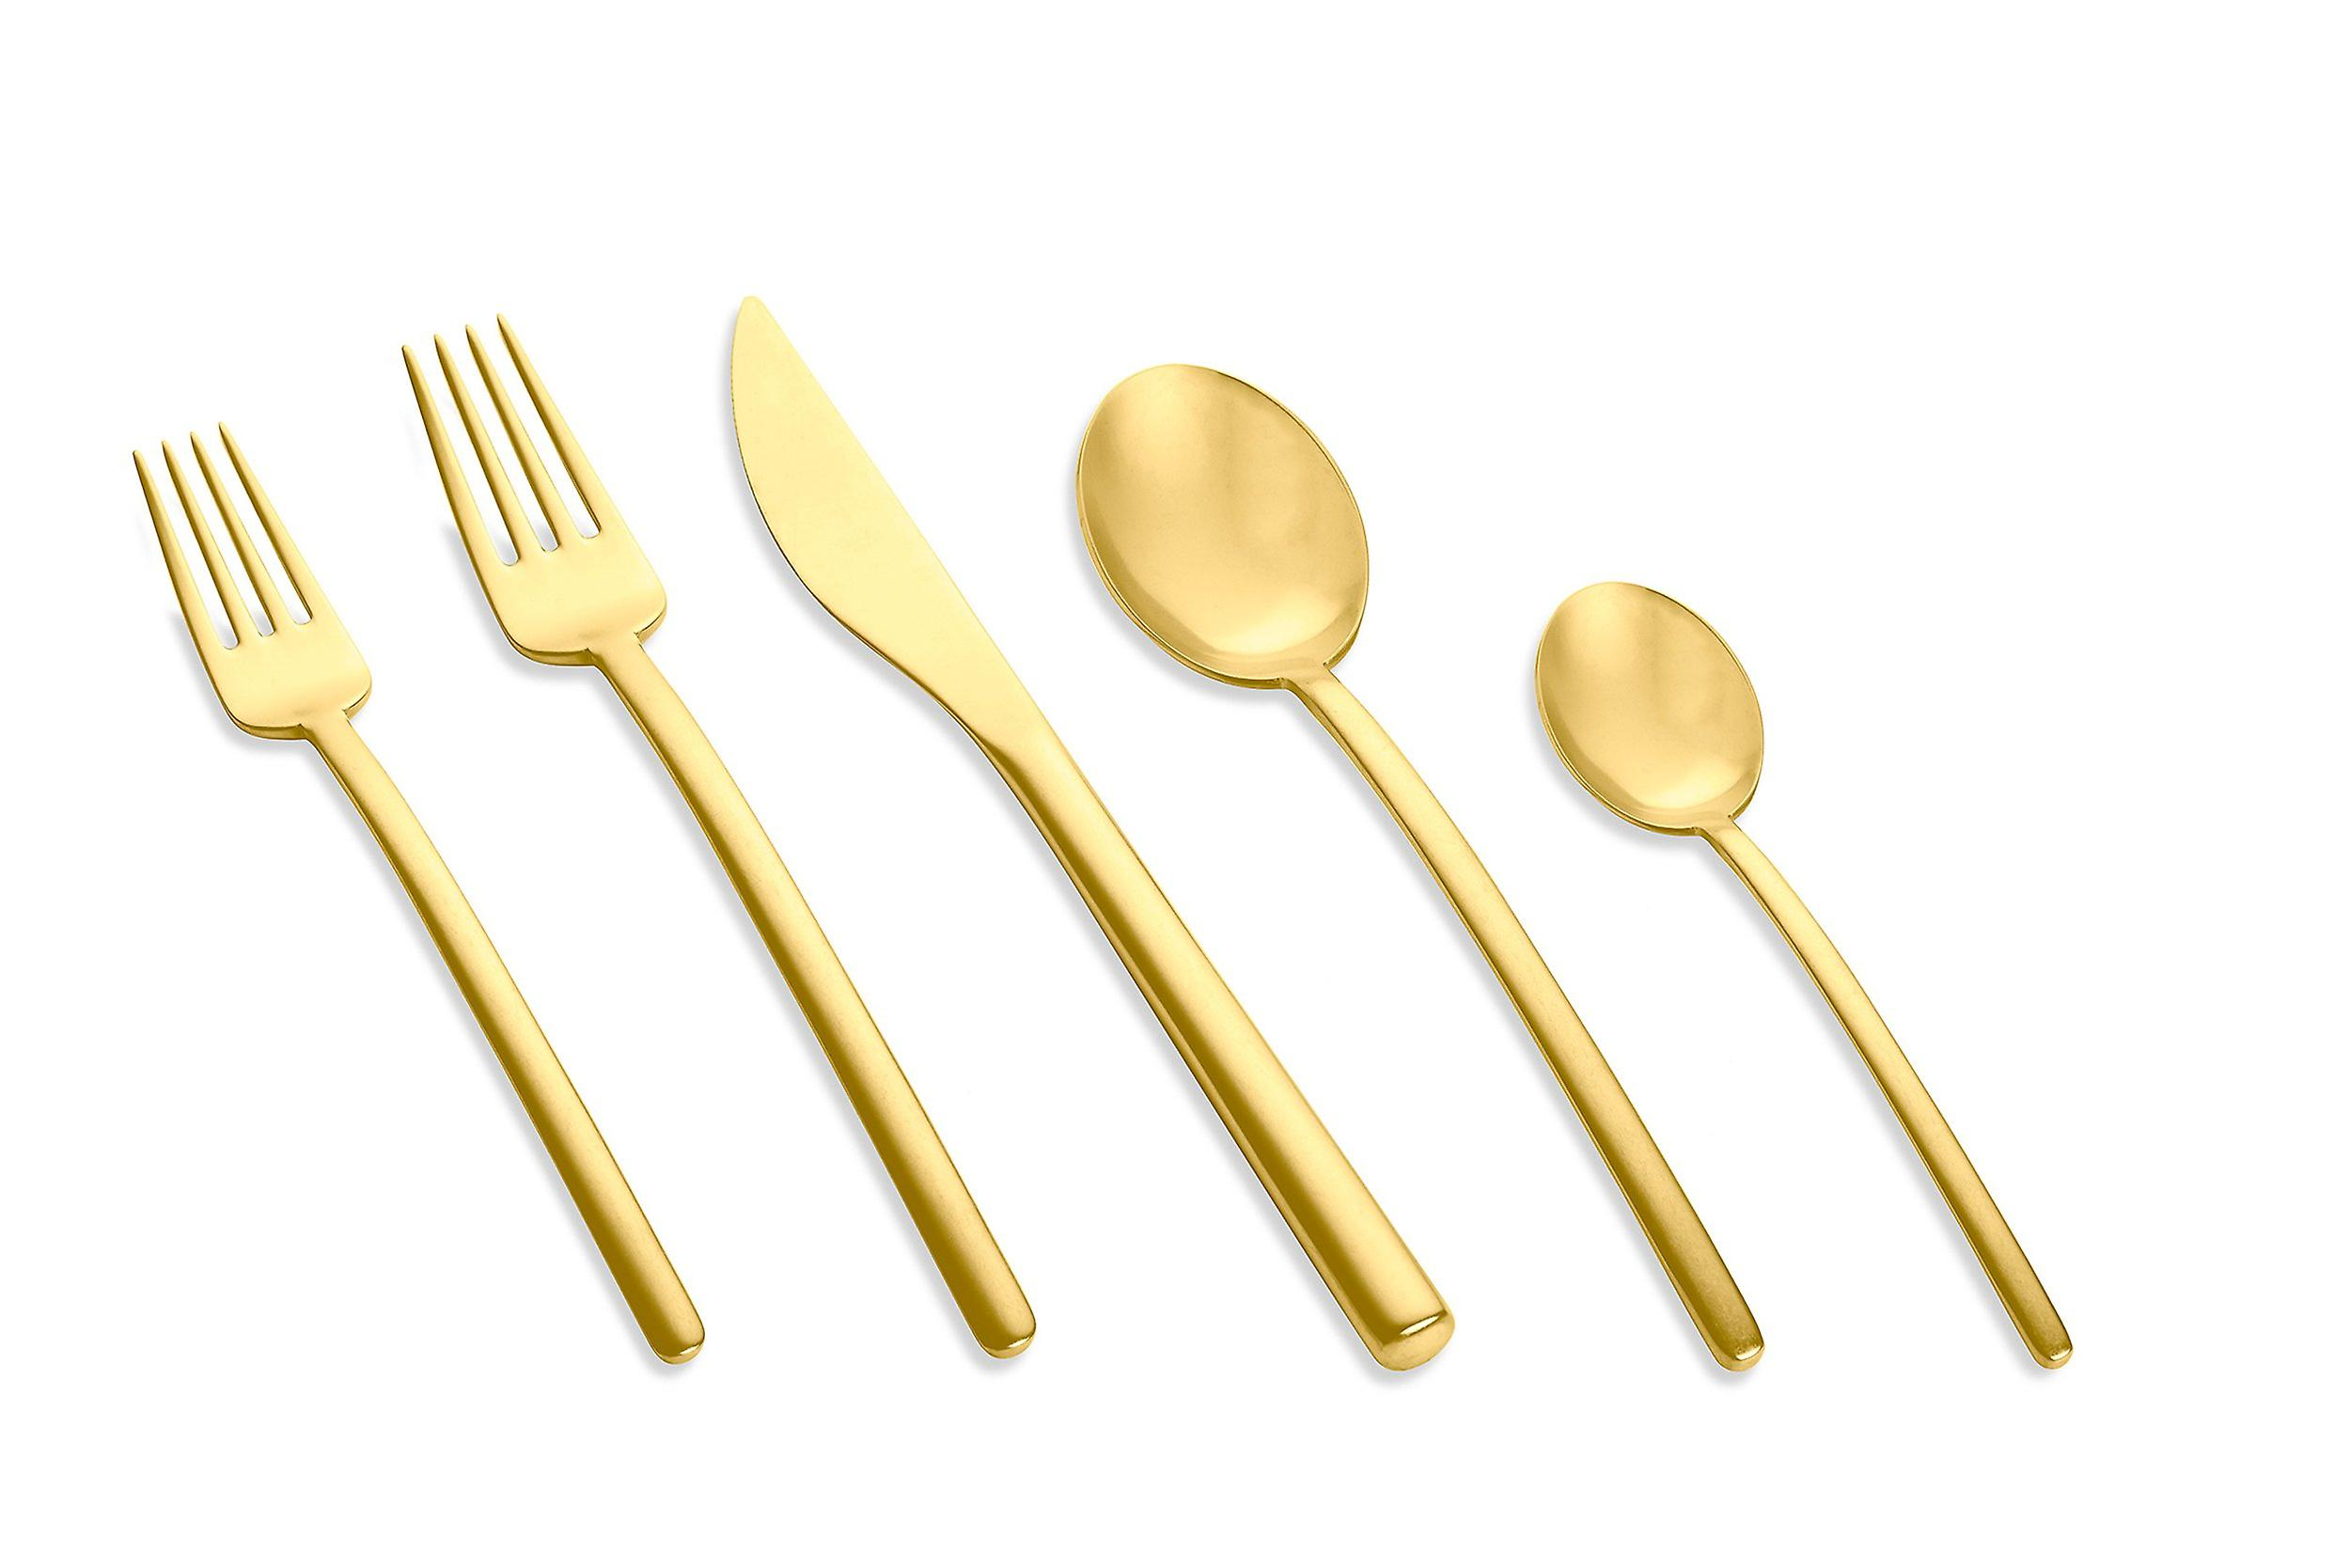 Mepra Due Ice Oro 5 pcs flatware set